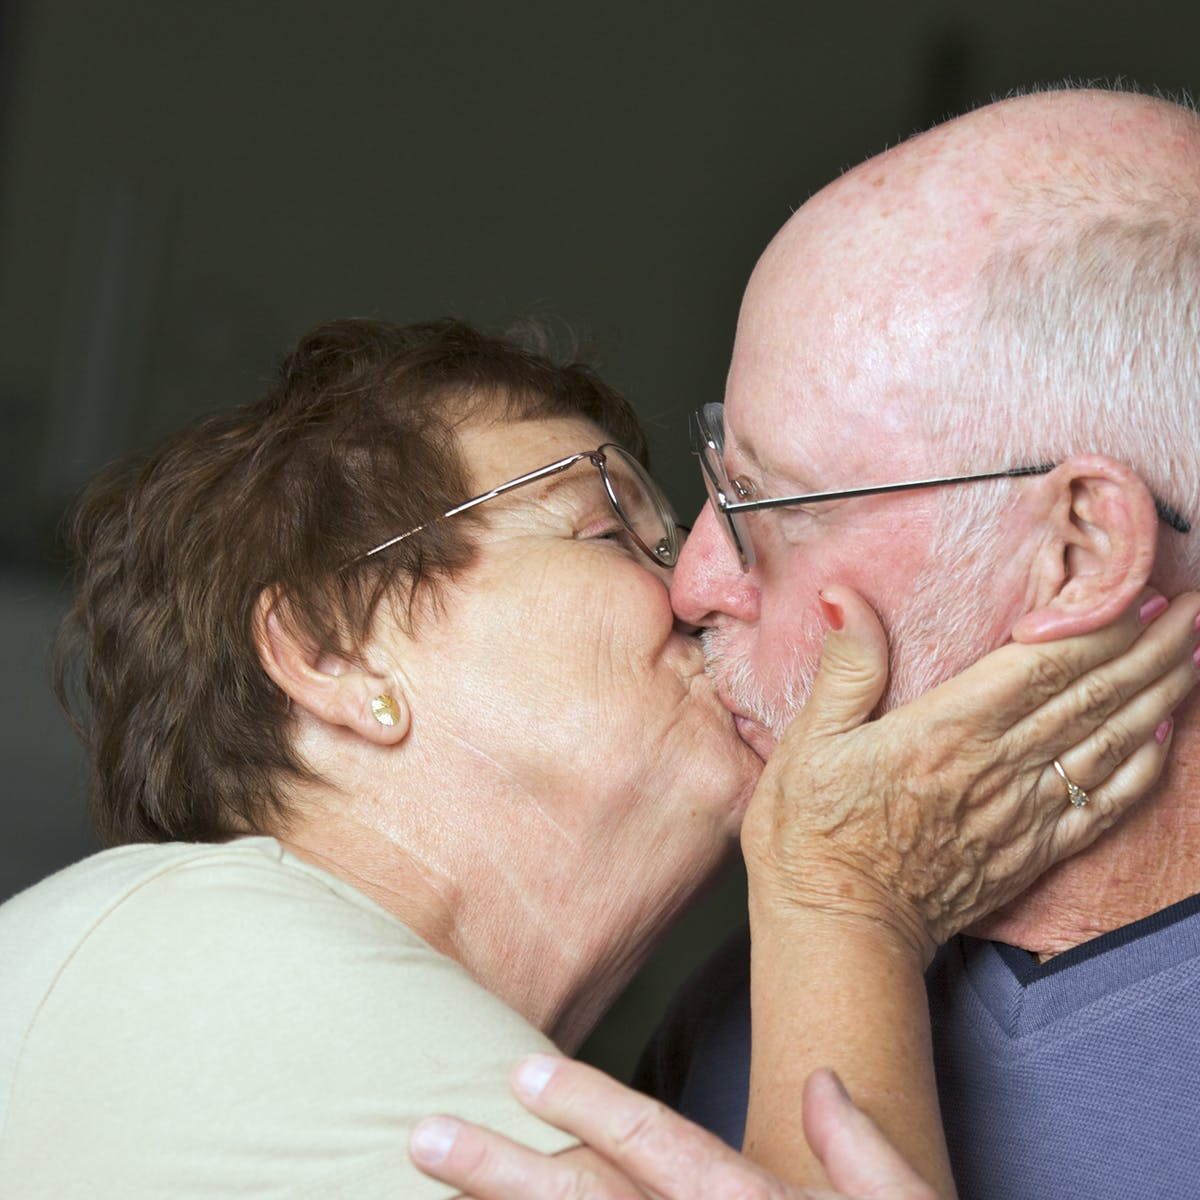 Let's talk about sex over 60: condoms, casual partners and ...